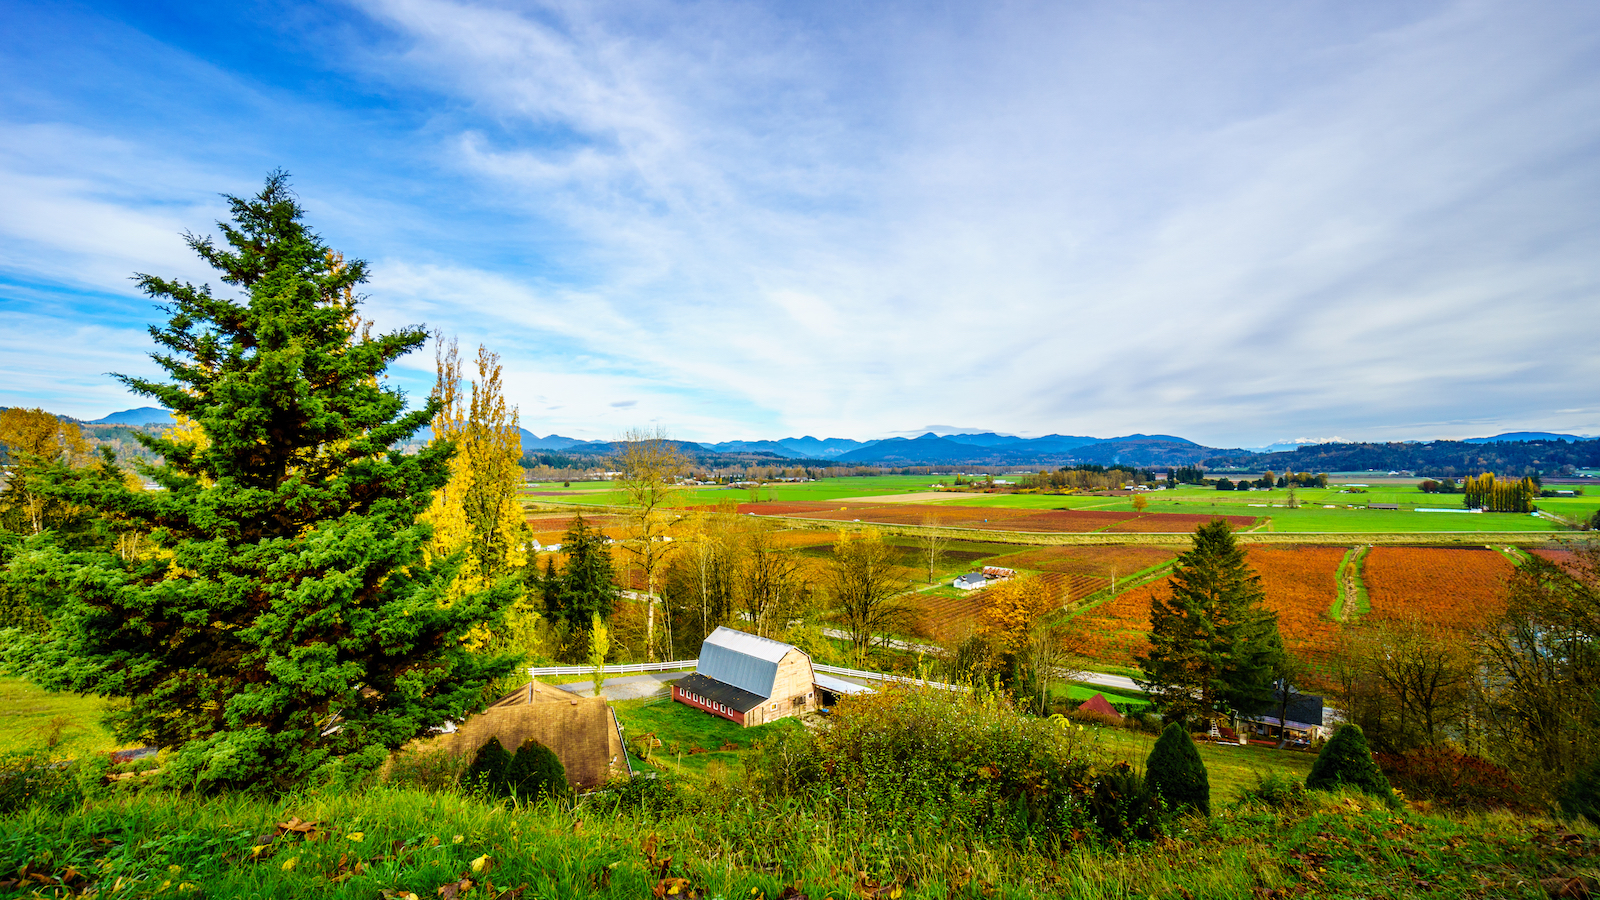 Vancouver to Kamloops with GyPSy Guide Driving Tour App